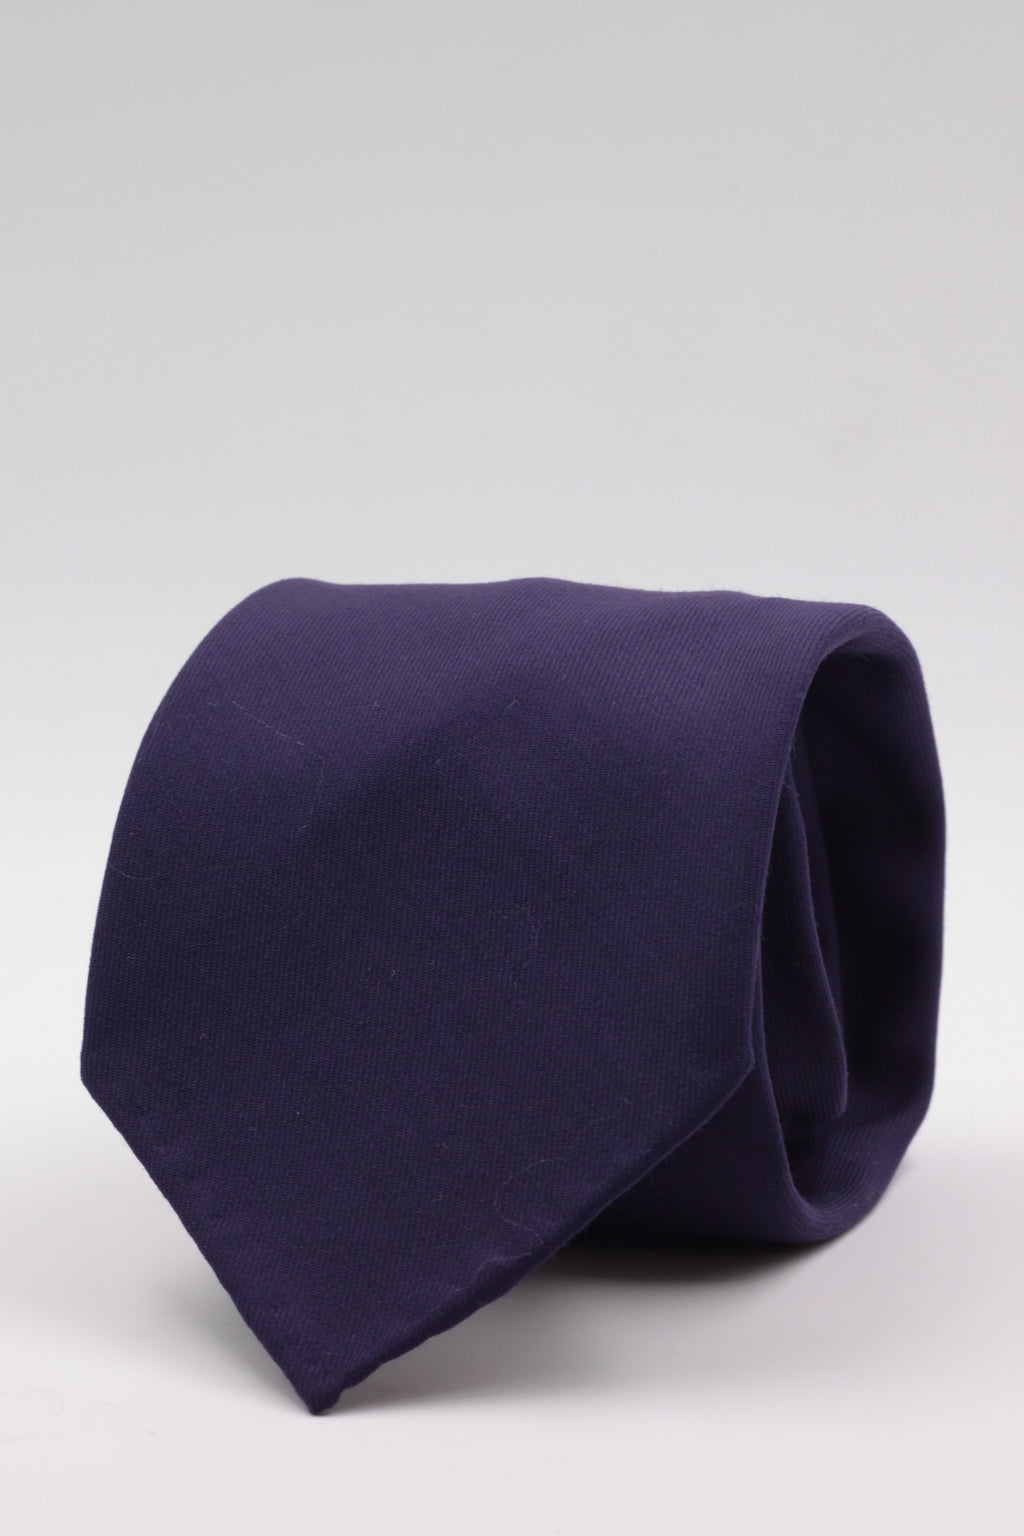 100% Super 140's Worsted Wool Gabardine 9 oz Unlined Hand rolled blades Purple plain  tie Handmade in Rome, Italy 8 cm x 150 cm